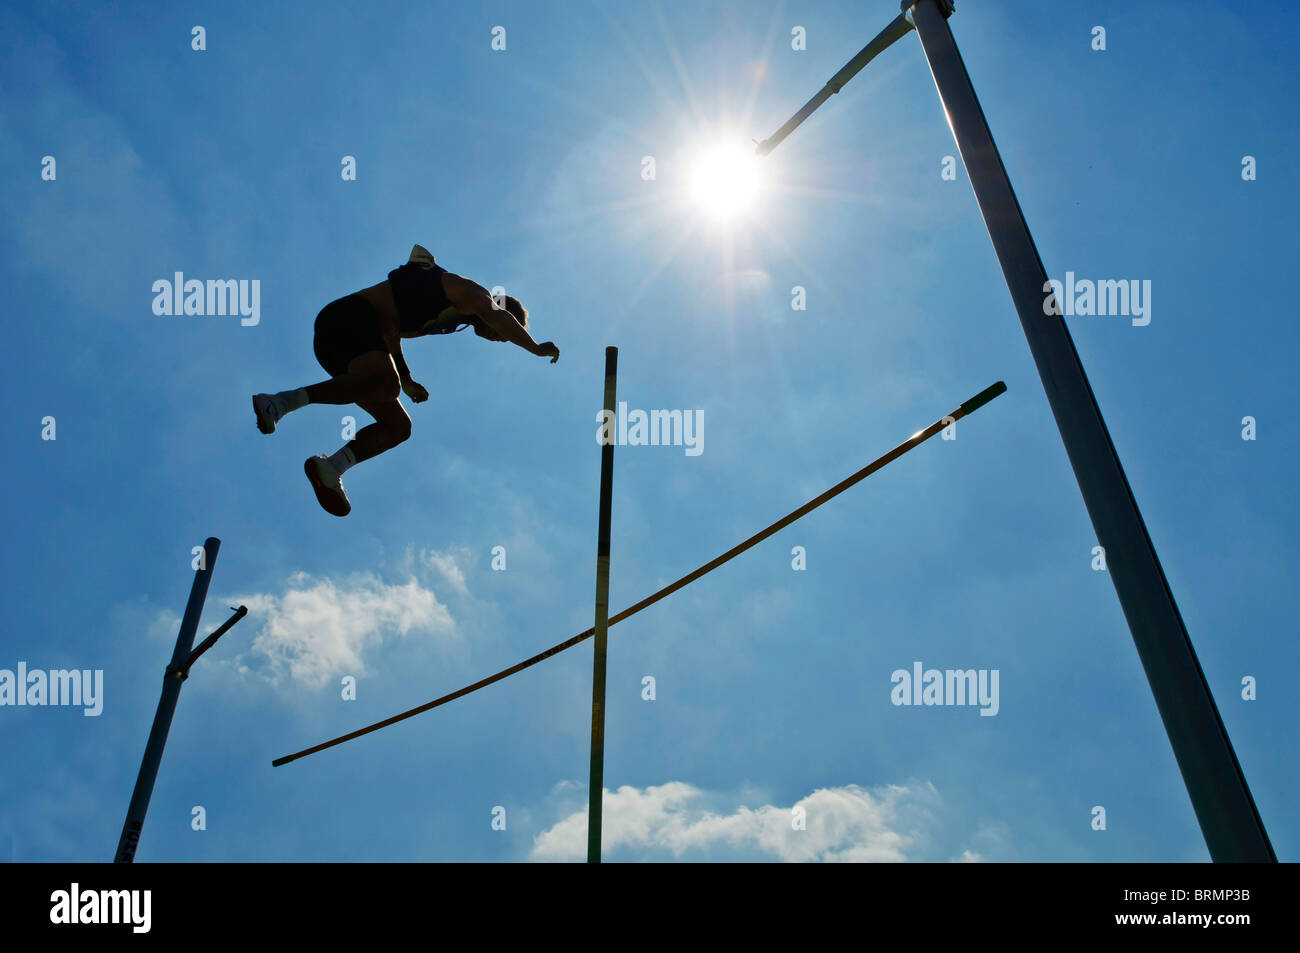 Paul Vaulter fails the jump againstt blue sky - Stock Image